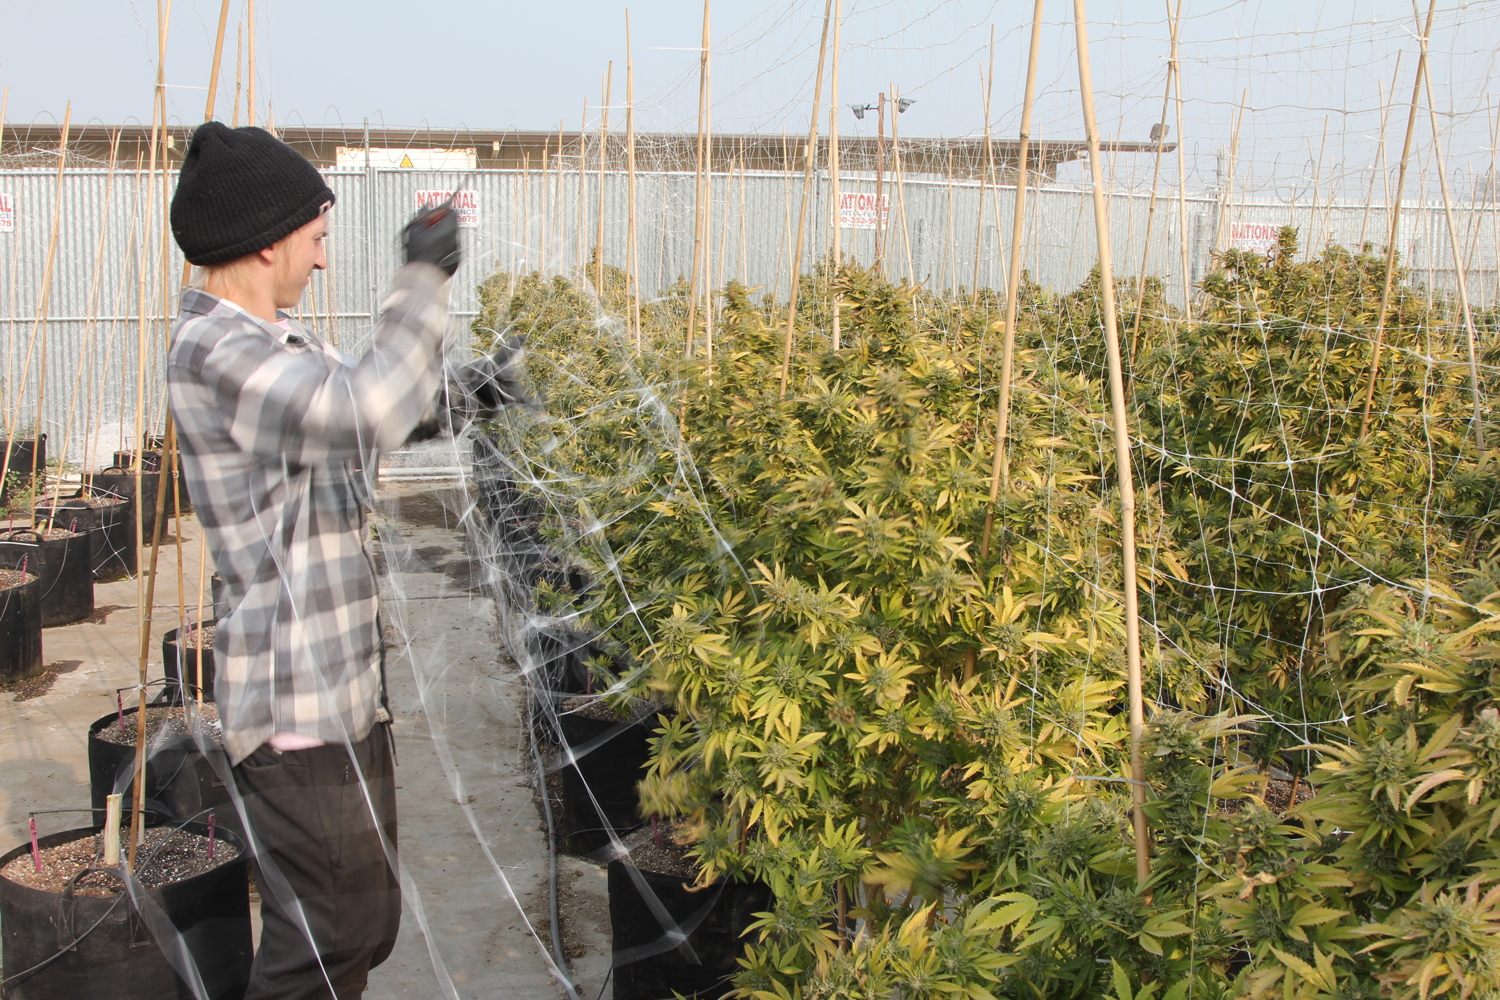 Pulling the trellis netting off the cannabis is the first step in the harvest process.